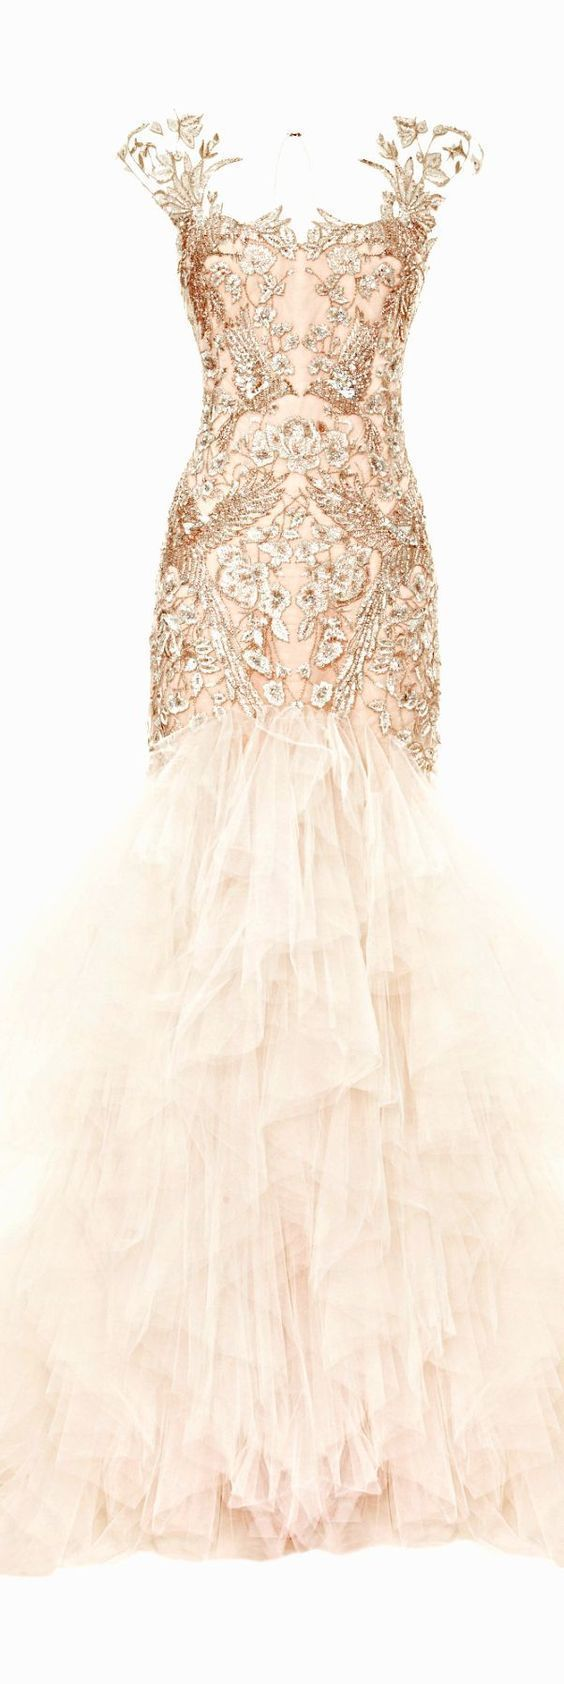 stunning embellished wedding gown / http://www.himisspuff.com/rose-gold-metallic-wedding-color-ideas/